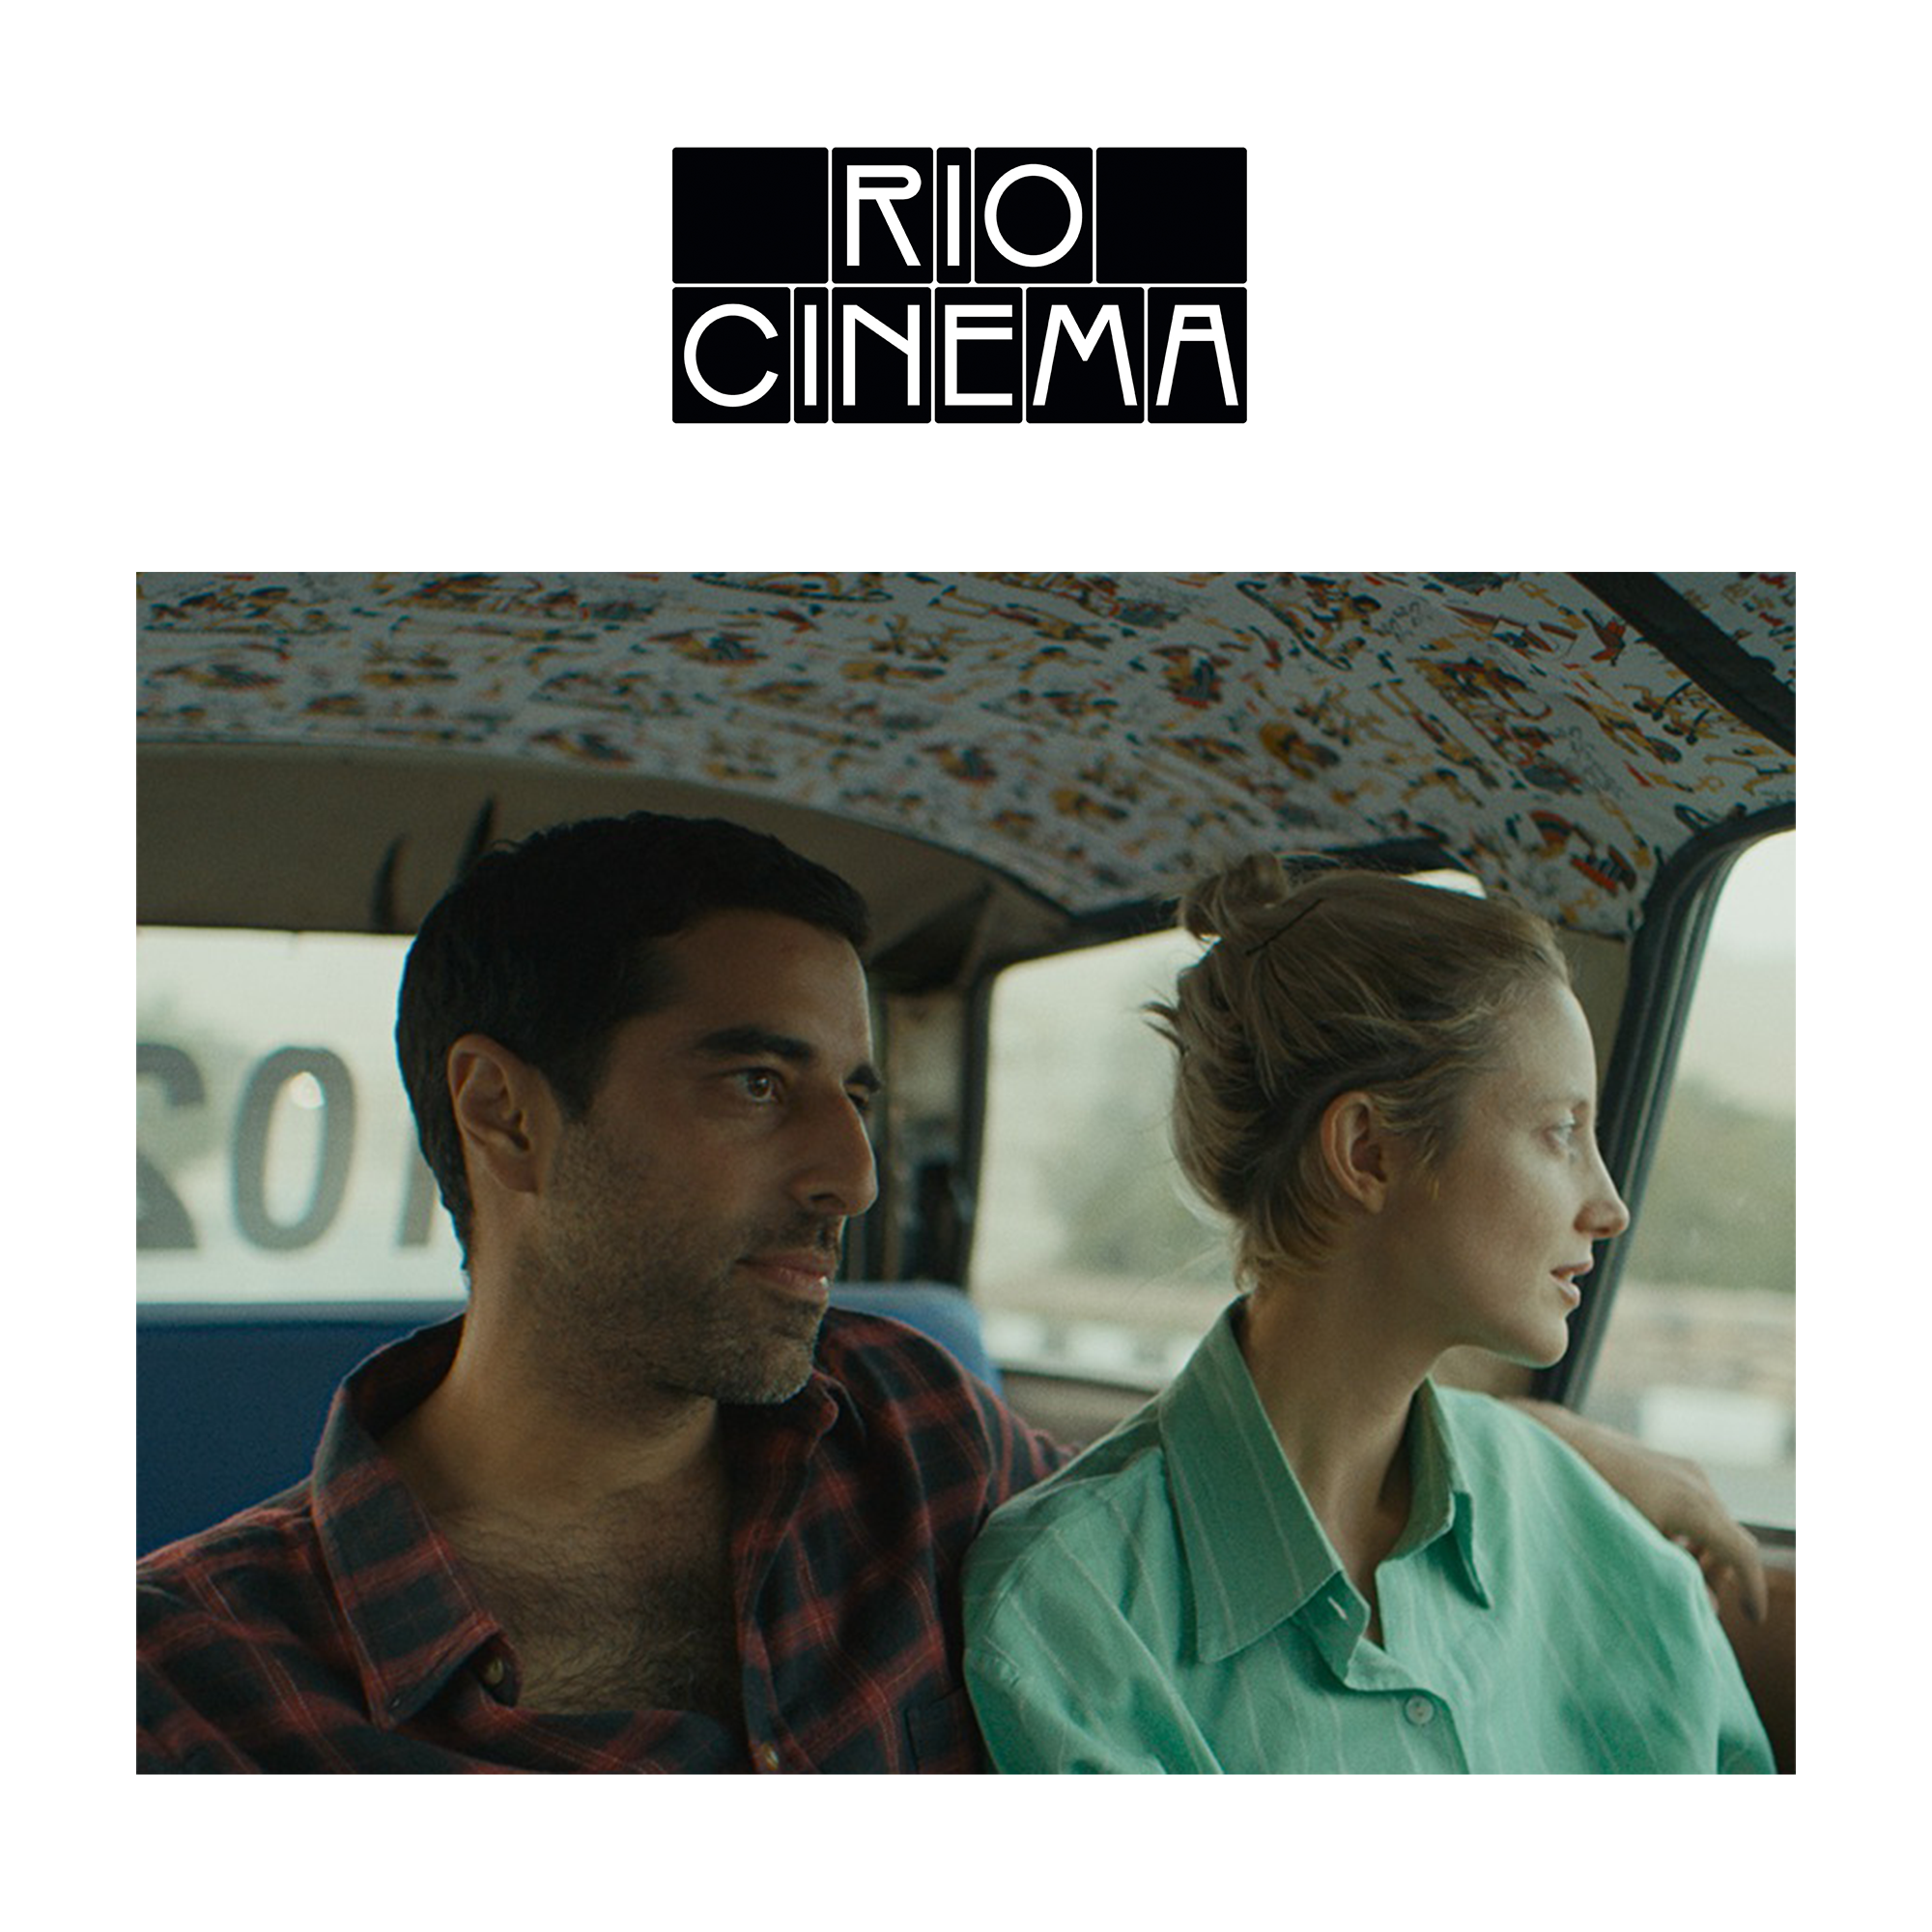 Luxor at Rio Cinema